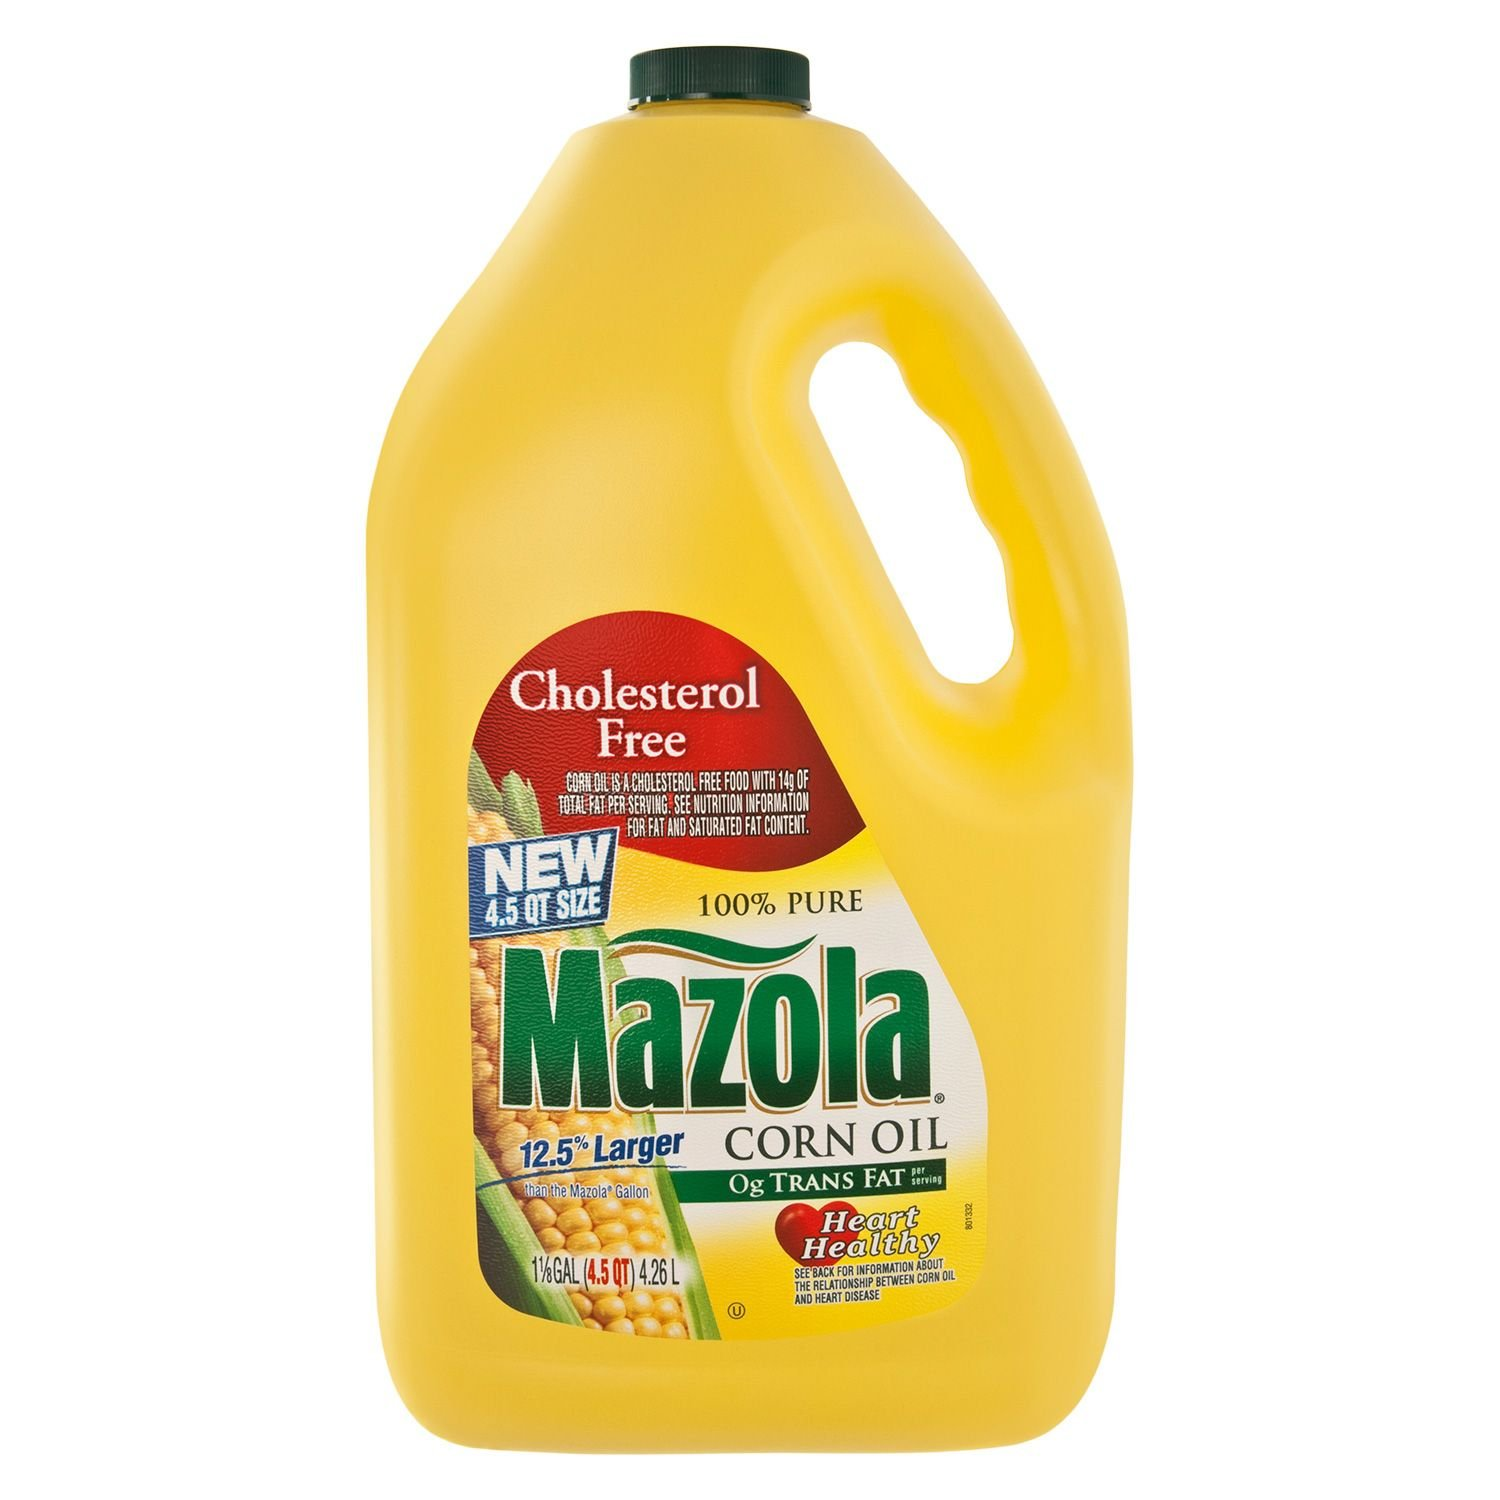 Mazola Corn Oil (4.5 qt.) (pack of 2)